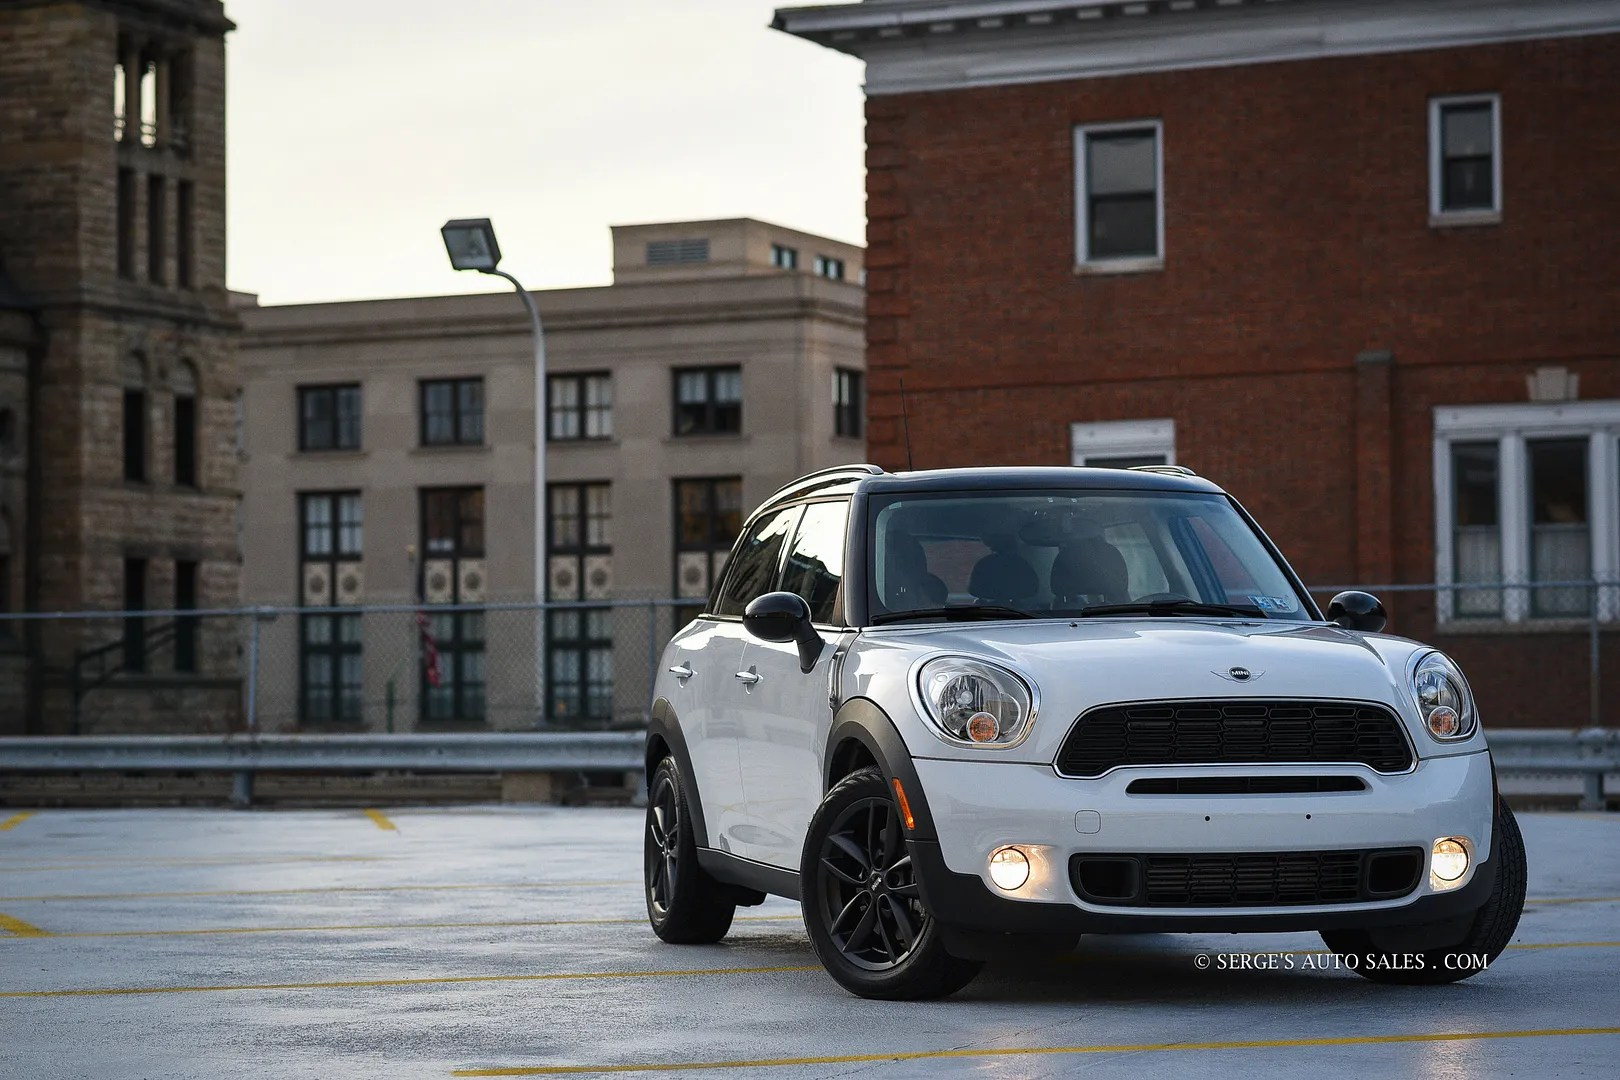 photo countryman-70_zpsozzfsefj.jpg